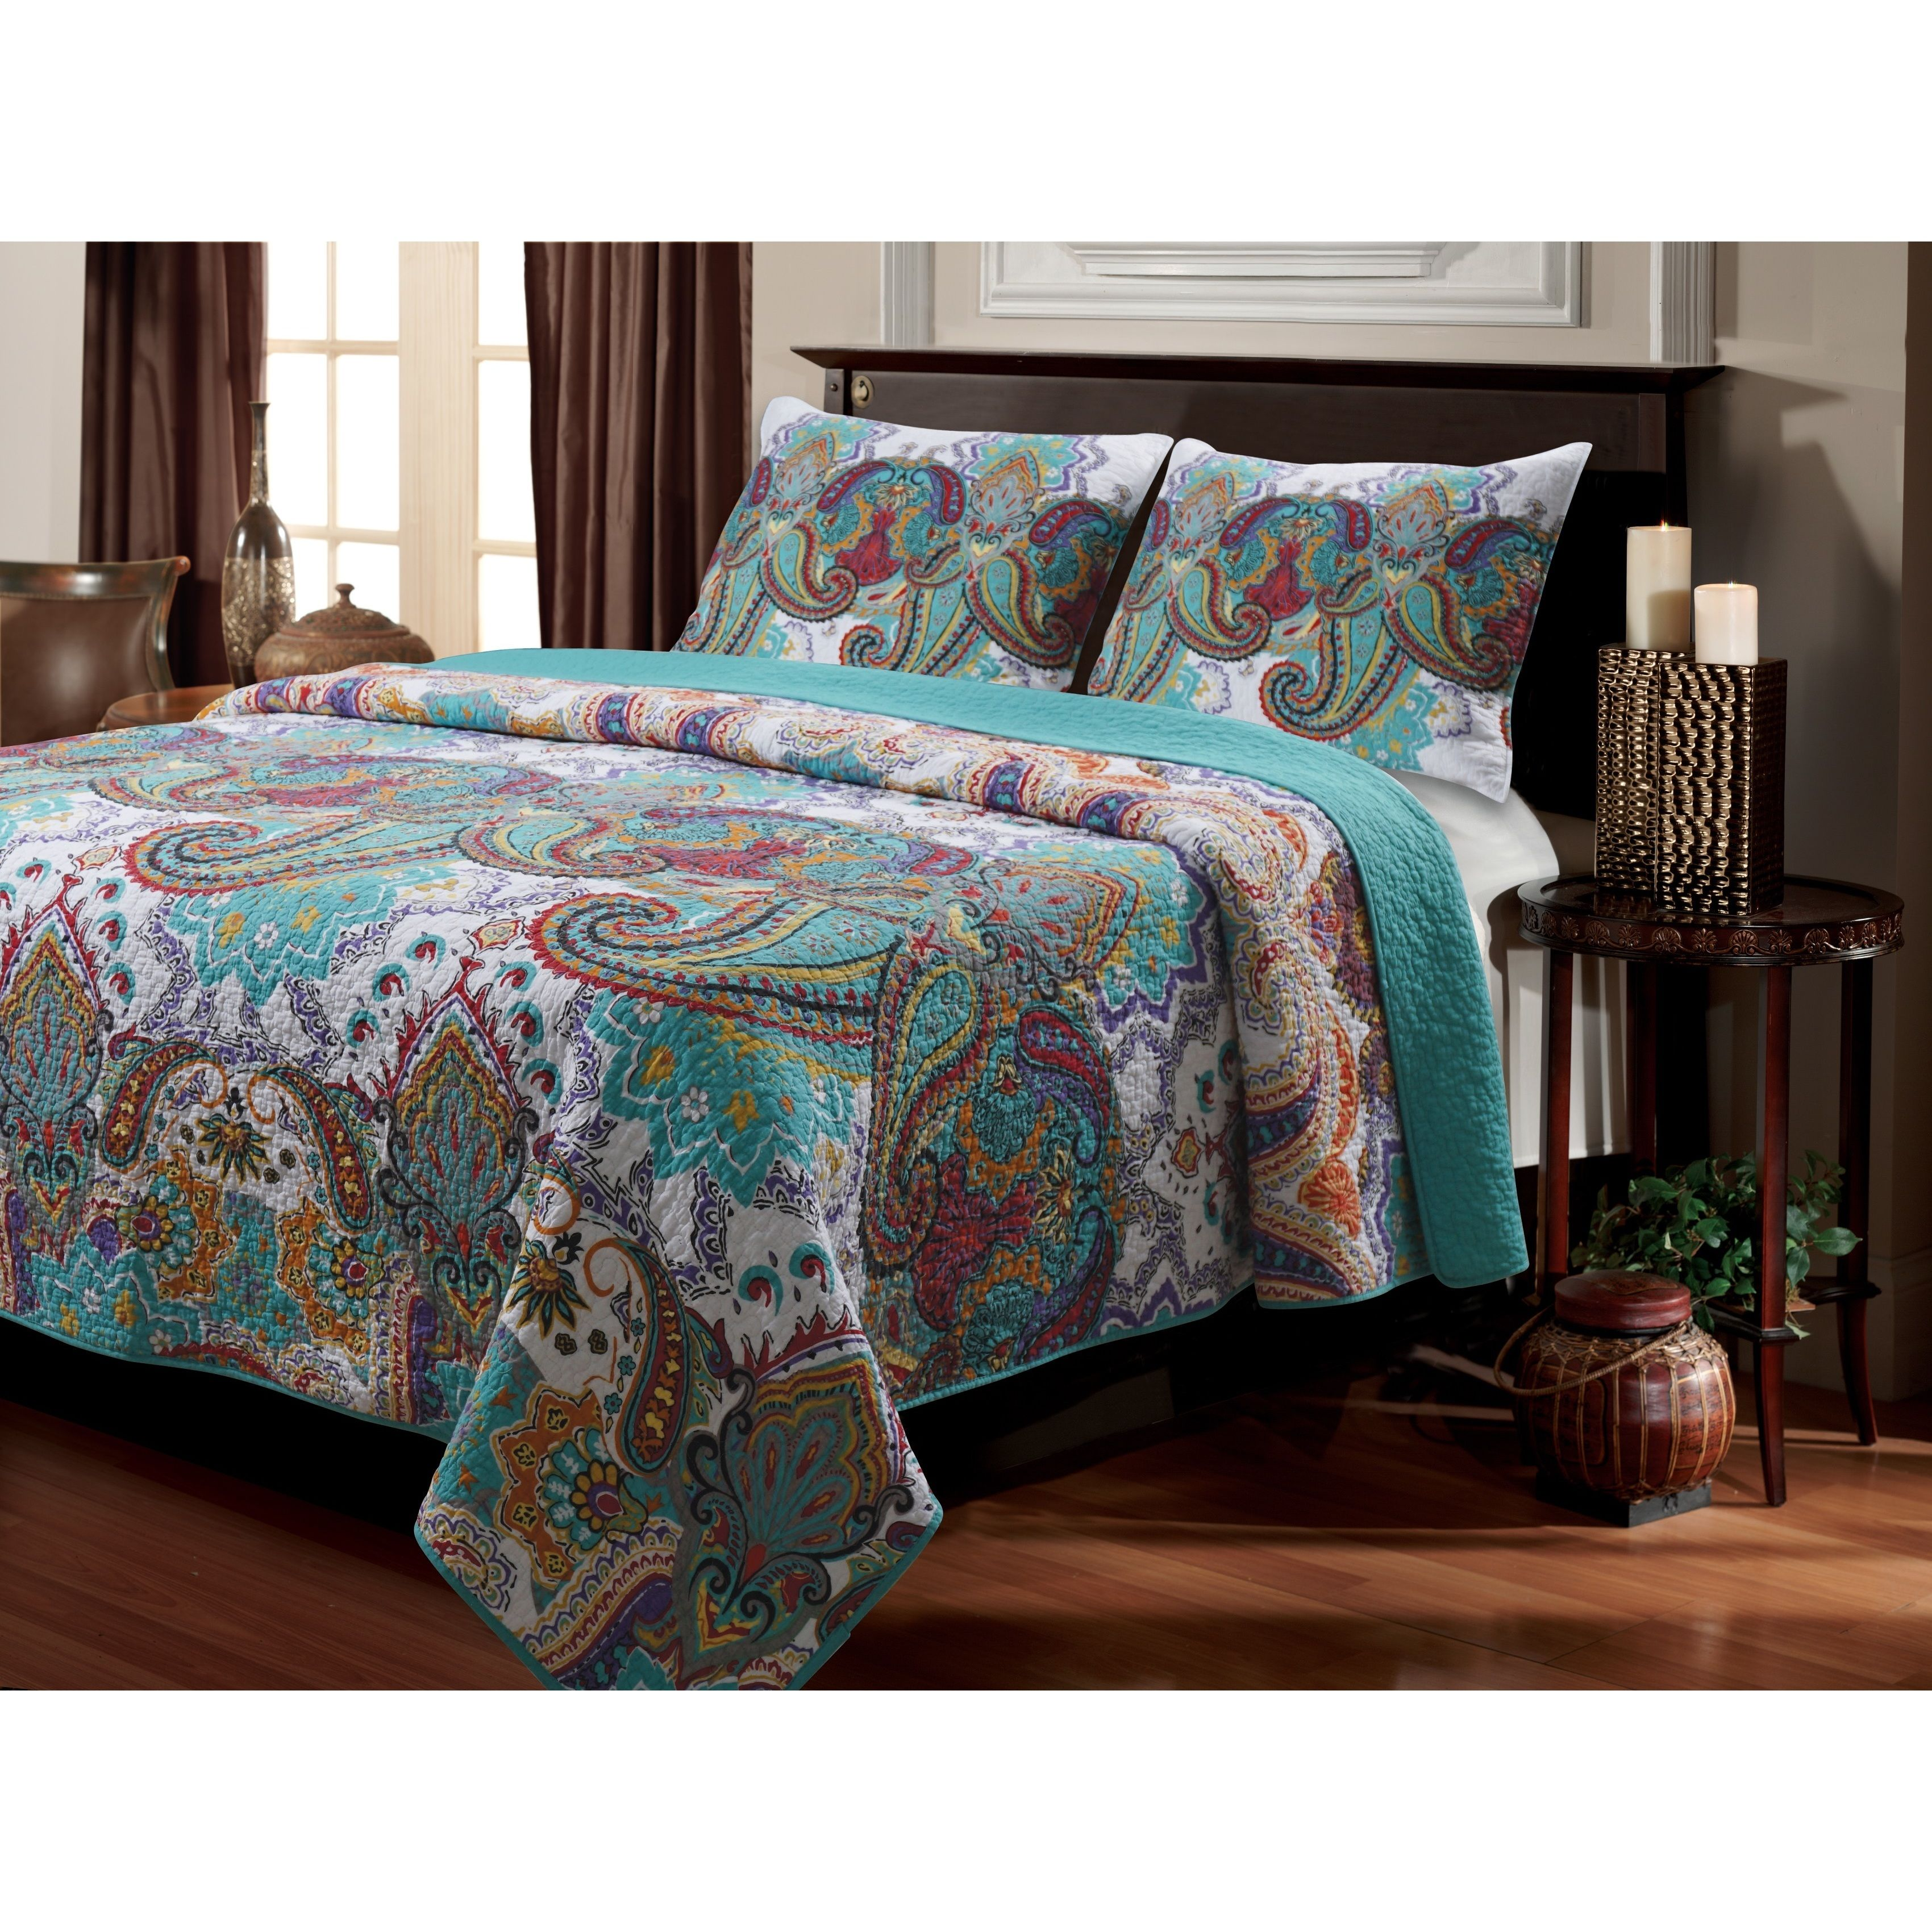 quilt sheet elegant paisley duvet quilts bedding buy exotic wholesale comforter w com shipping get striped modern aliexpress print and bed set covers free on boho fashion